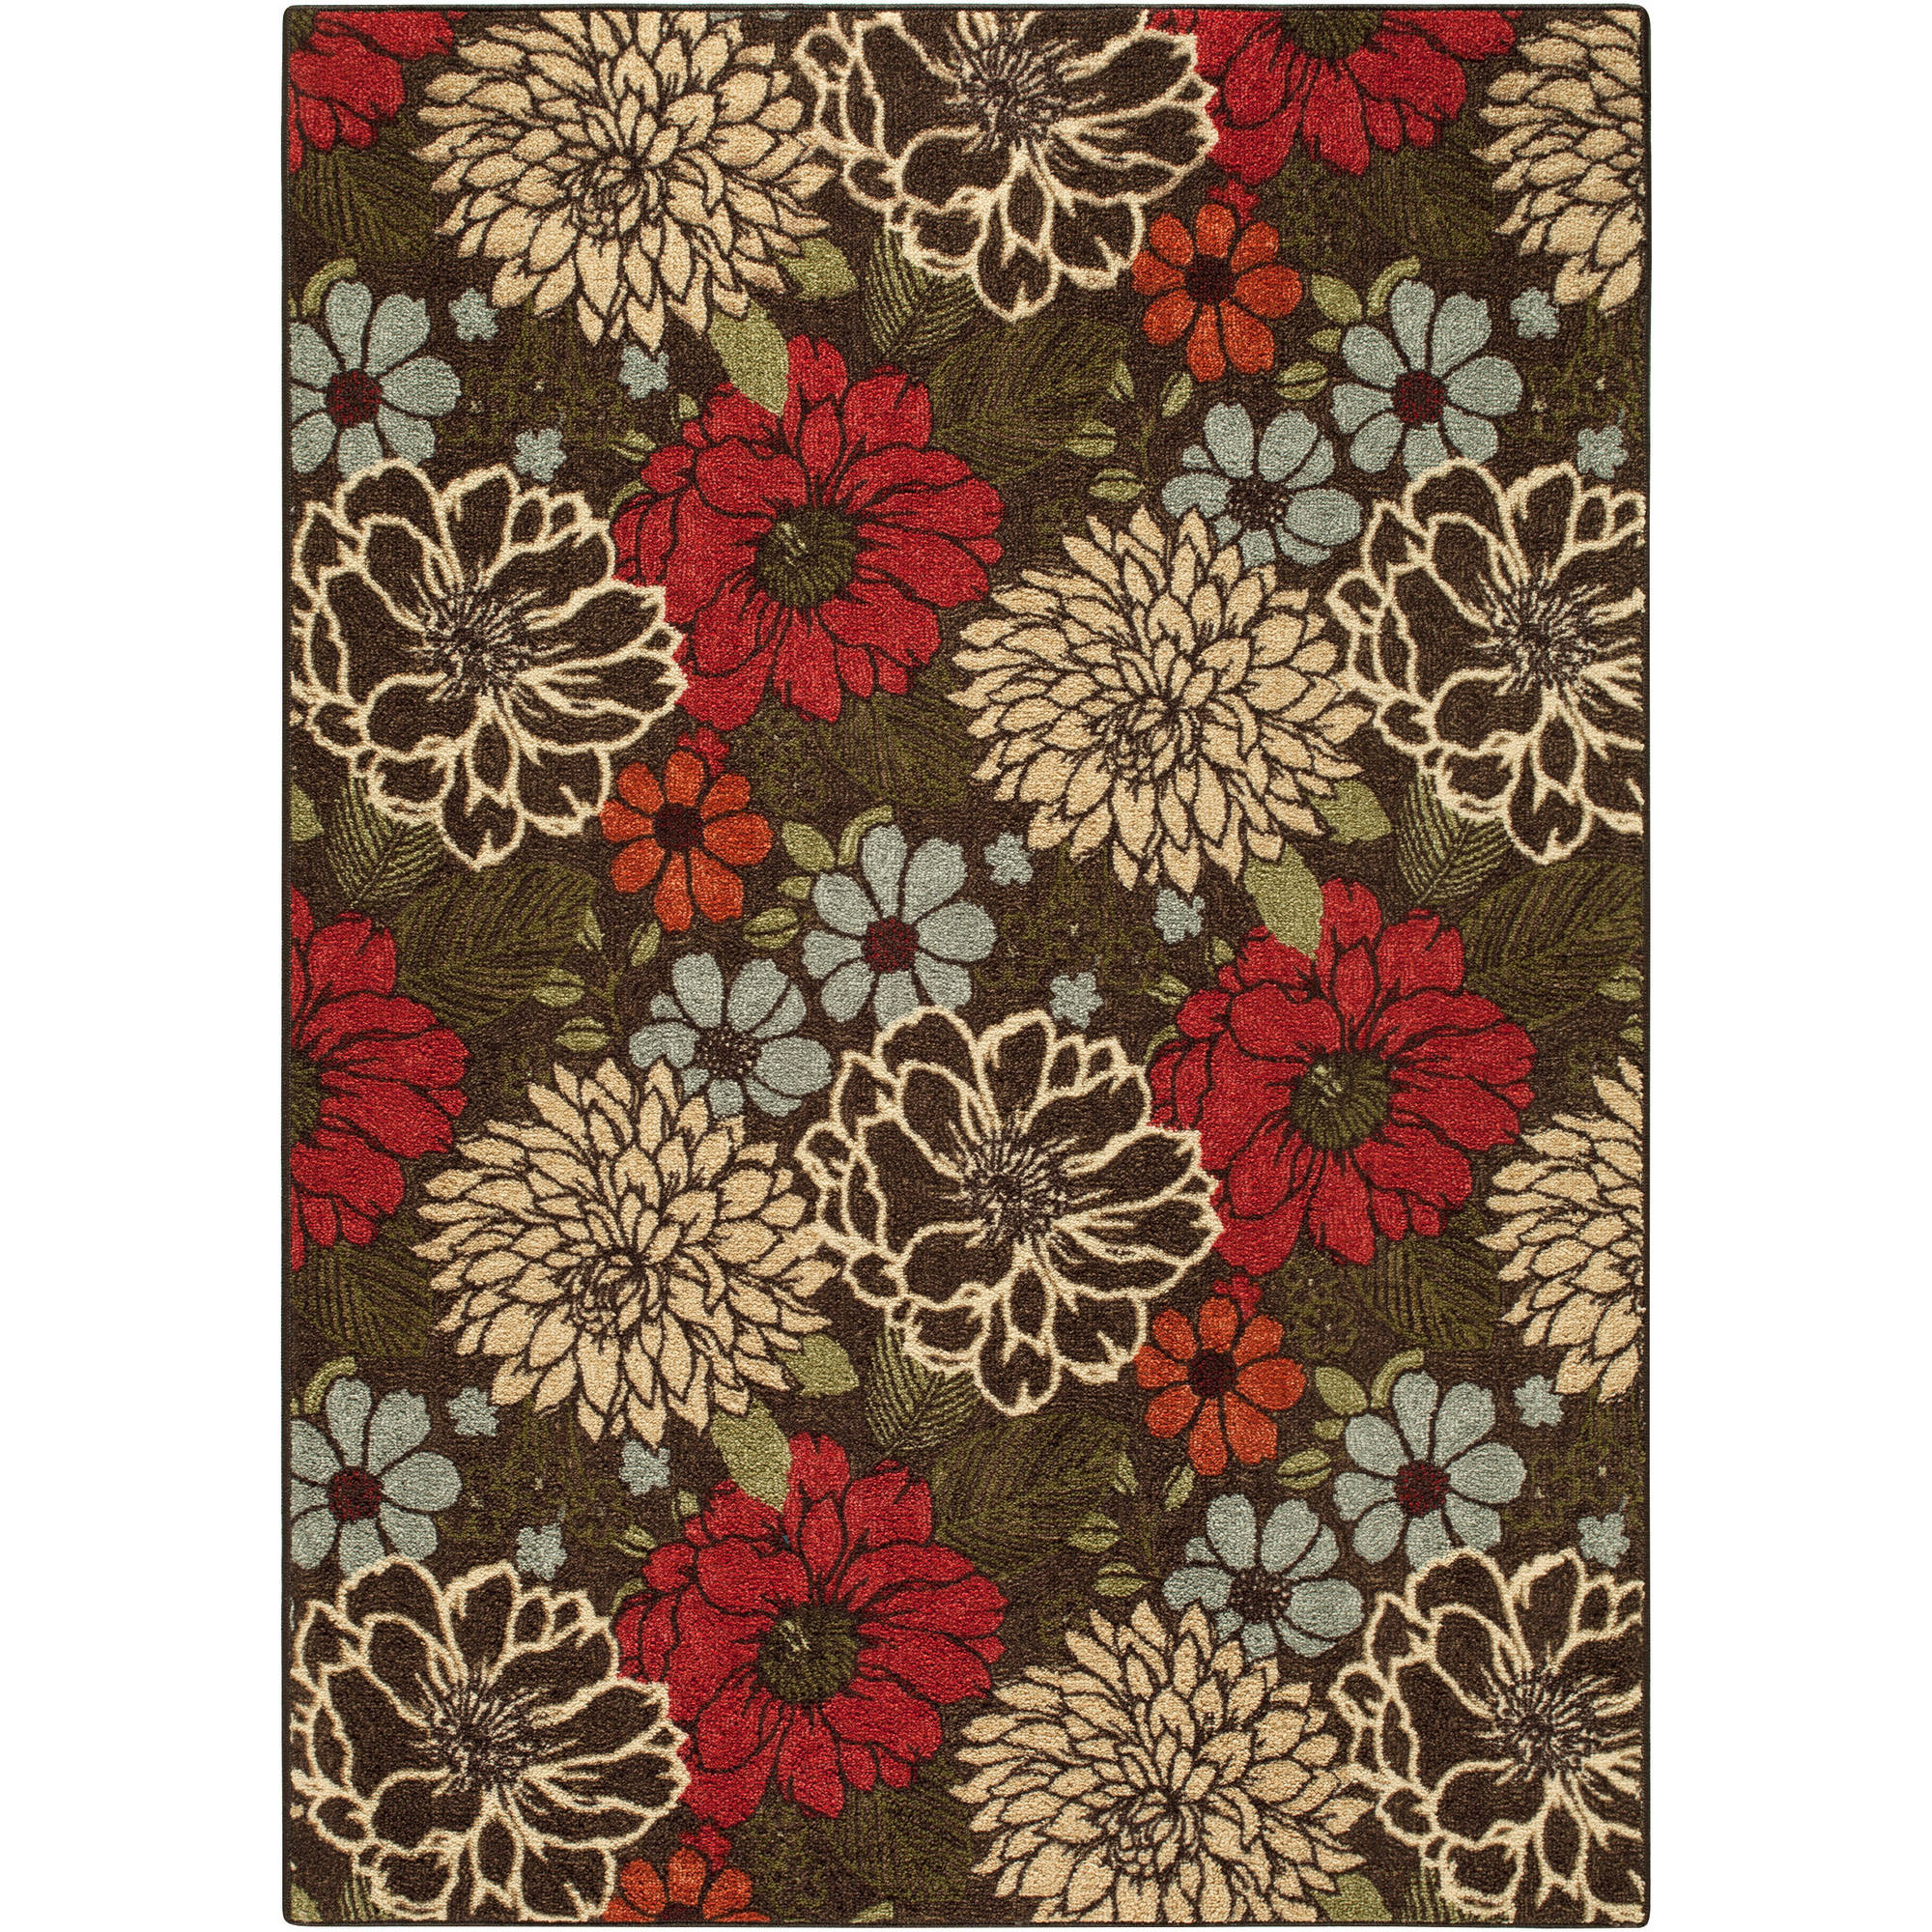 Better Homes and Gardens Diamond Area Rug - Walmart.com